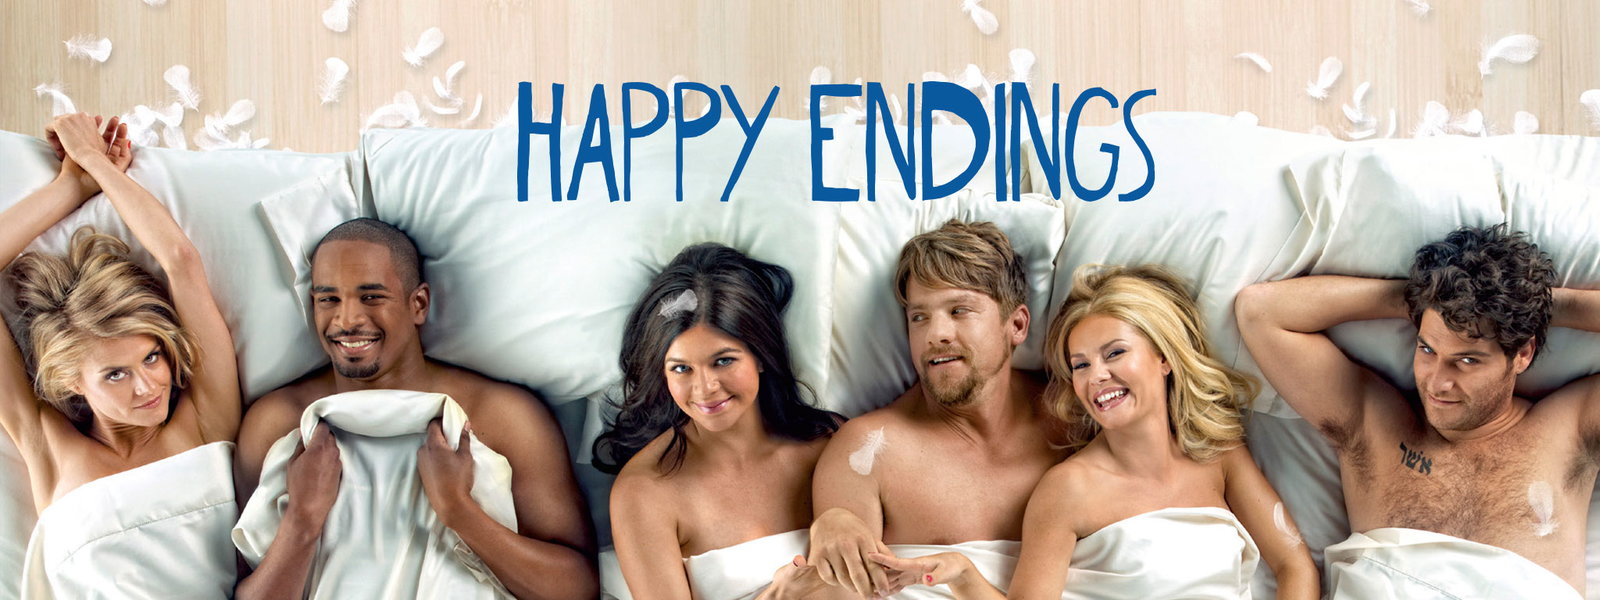 artists there happy endings